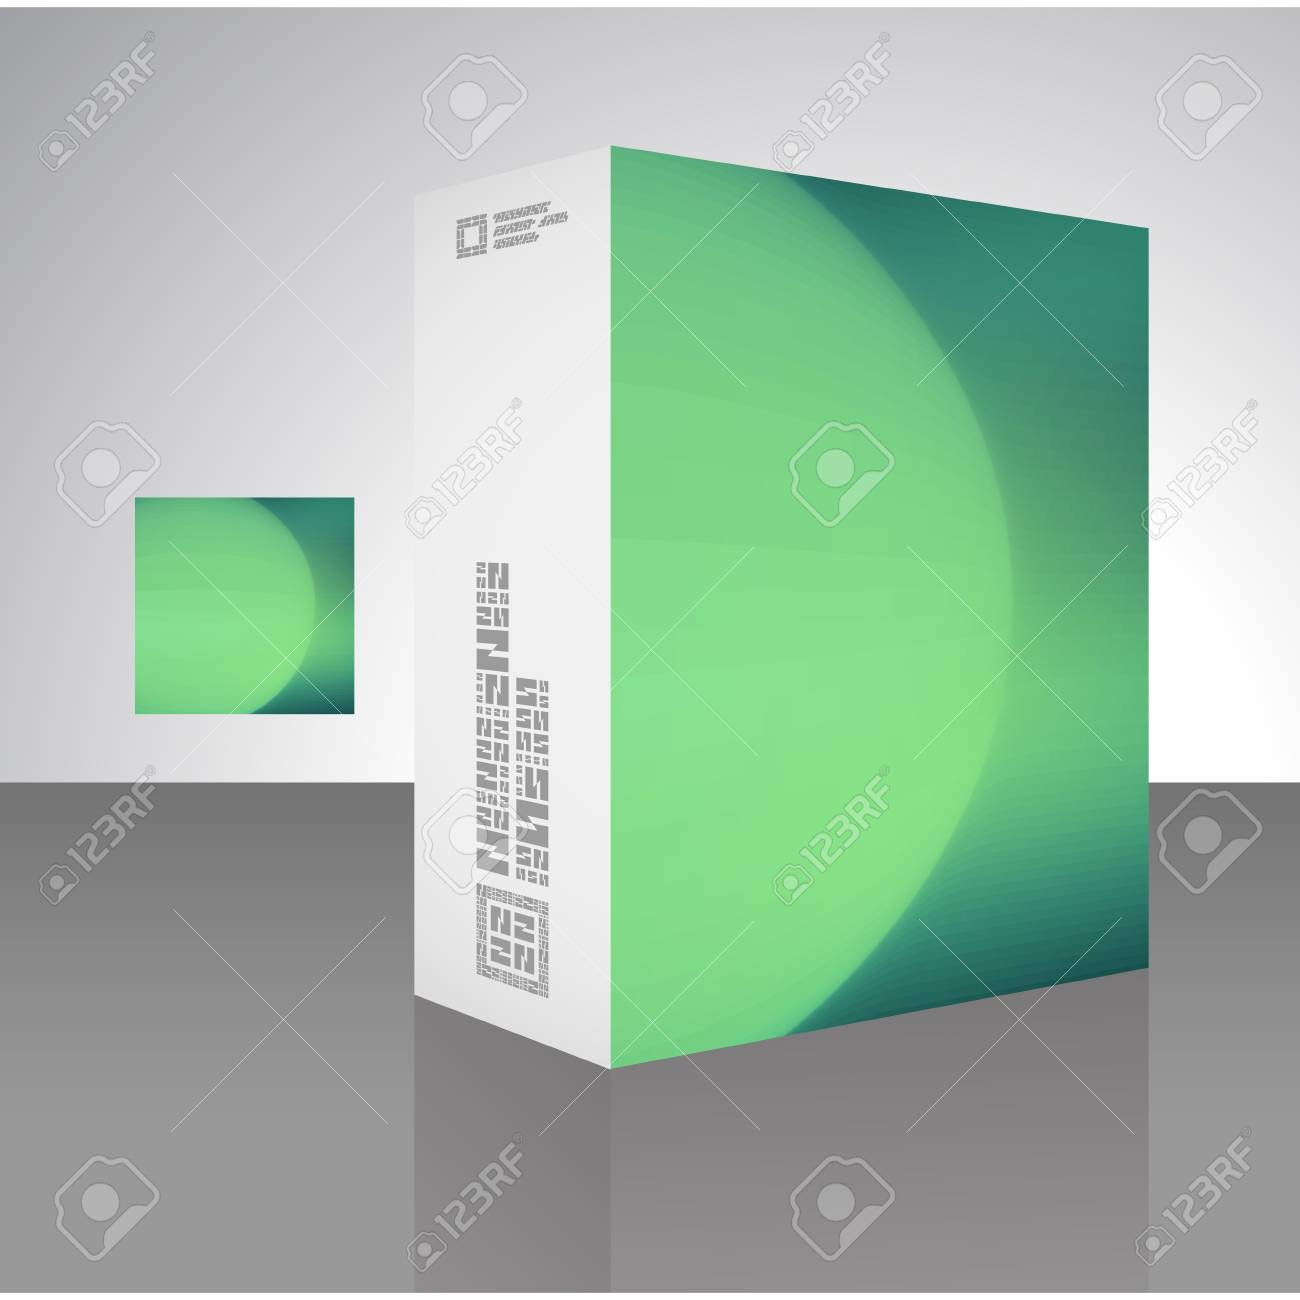 Packaging box Stock Vector - 17503986